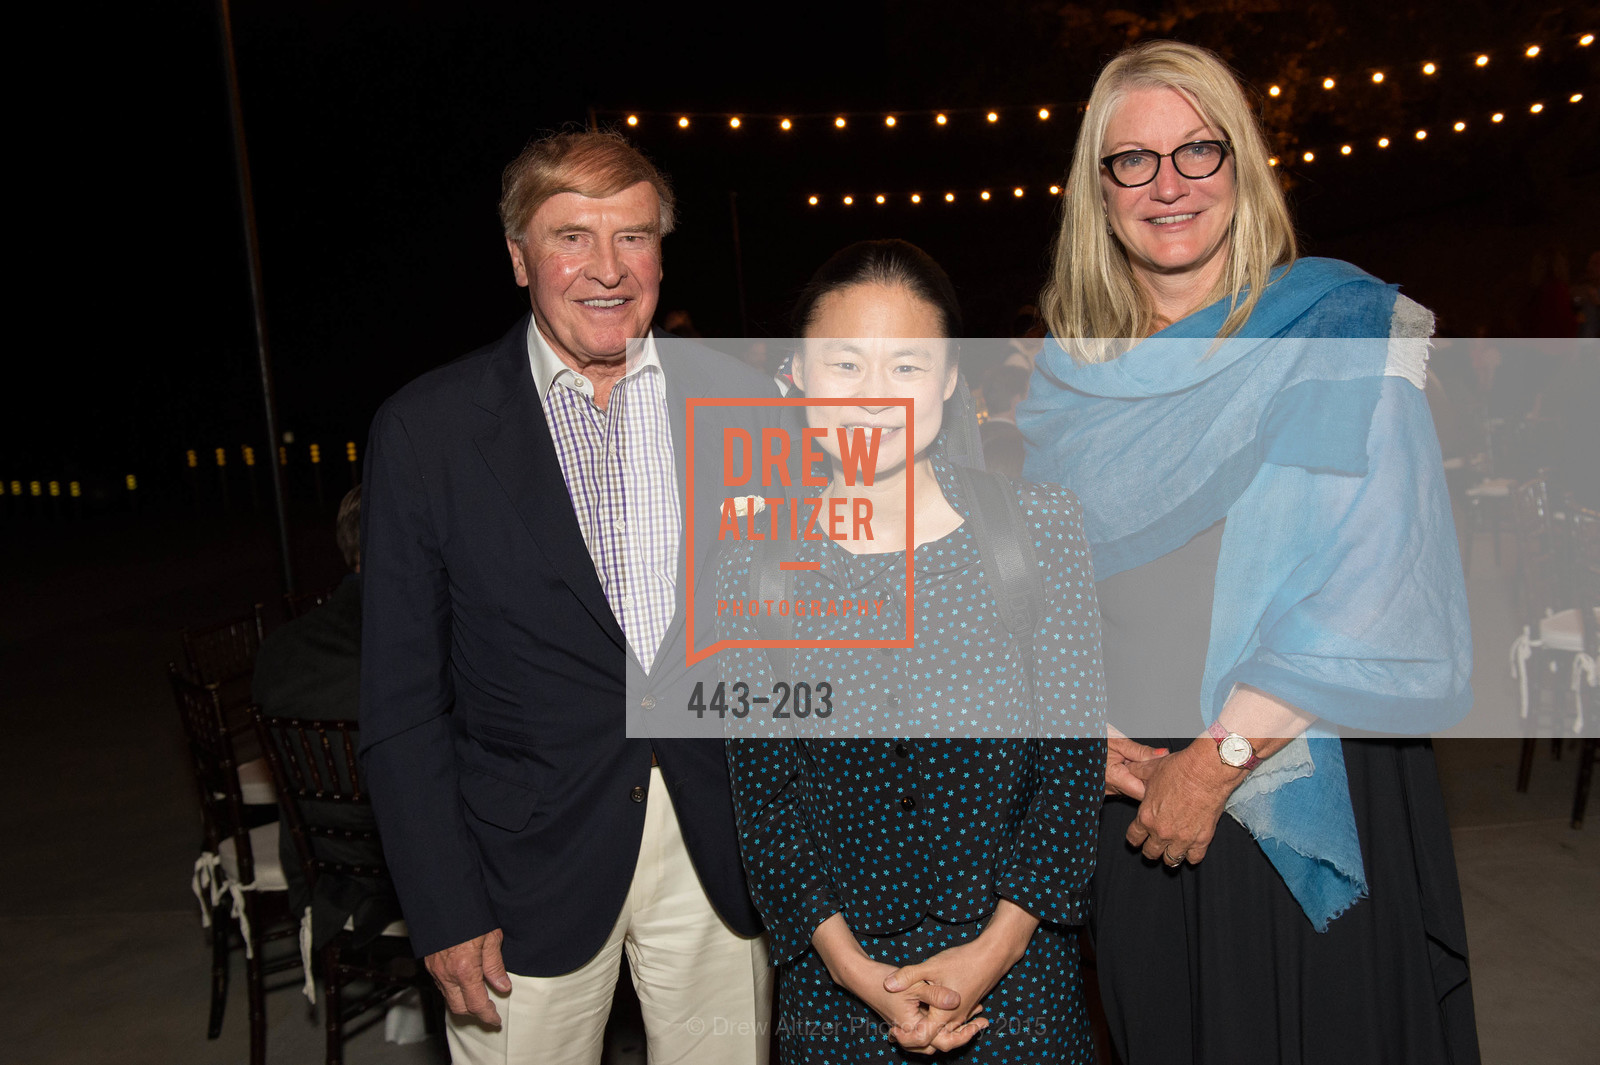 Dick Kramlich, Midori, Suzanne Deal Booth, Festival del Sole Patron Dinner at Odette Estate, Odette Estate. 5998 Silverado Trail, July 26th, 2015,Drew Altizer, Drew Altizer Photography, full-service agency, private events, San Francisco photographer, photographer california